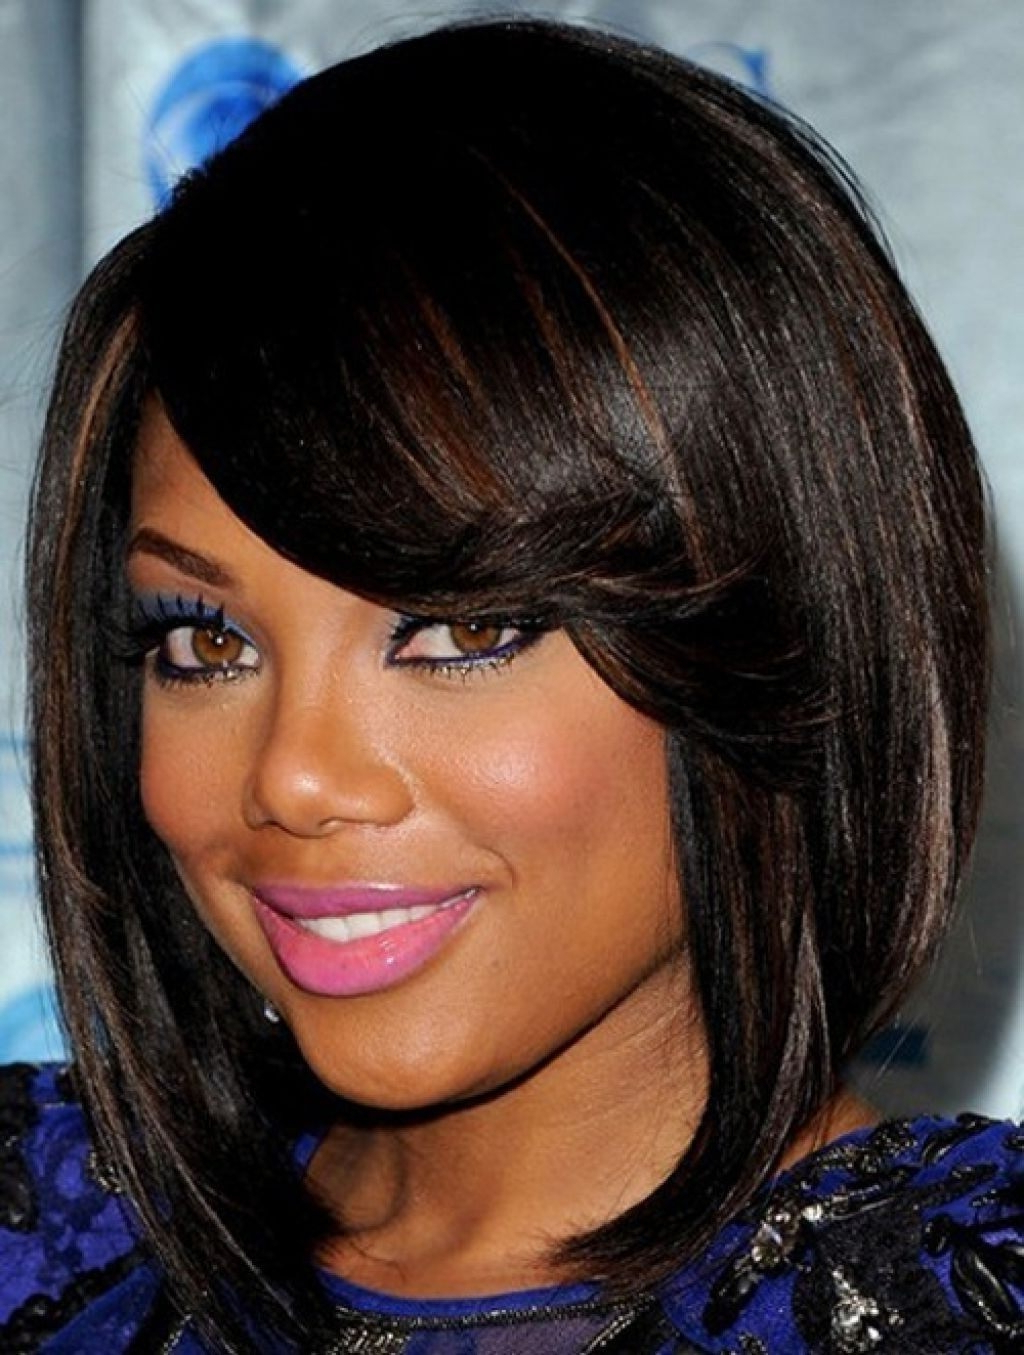 Most Popular Medium Hairstyles For Black Women With Layered Bob Hairstyles Black Women Women Medium Haircut Black Hair (View 12 of 20)